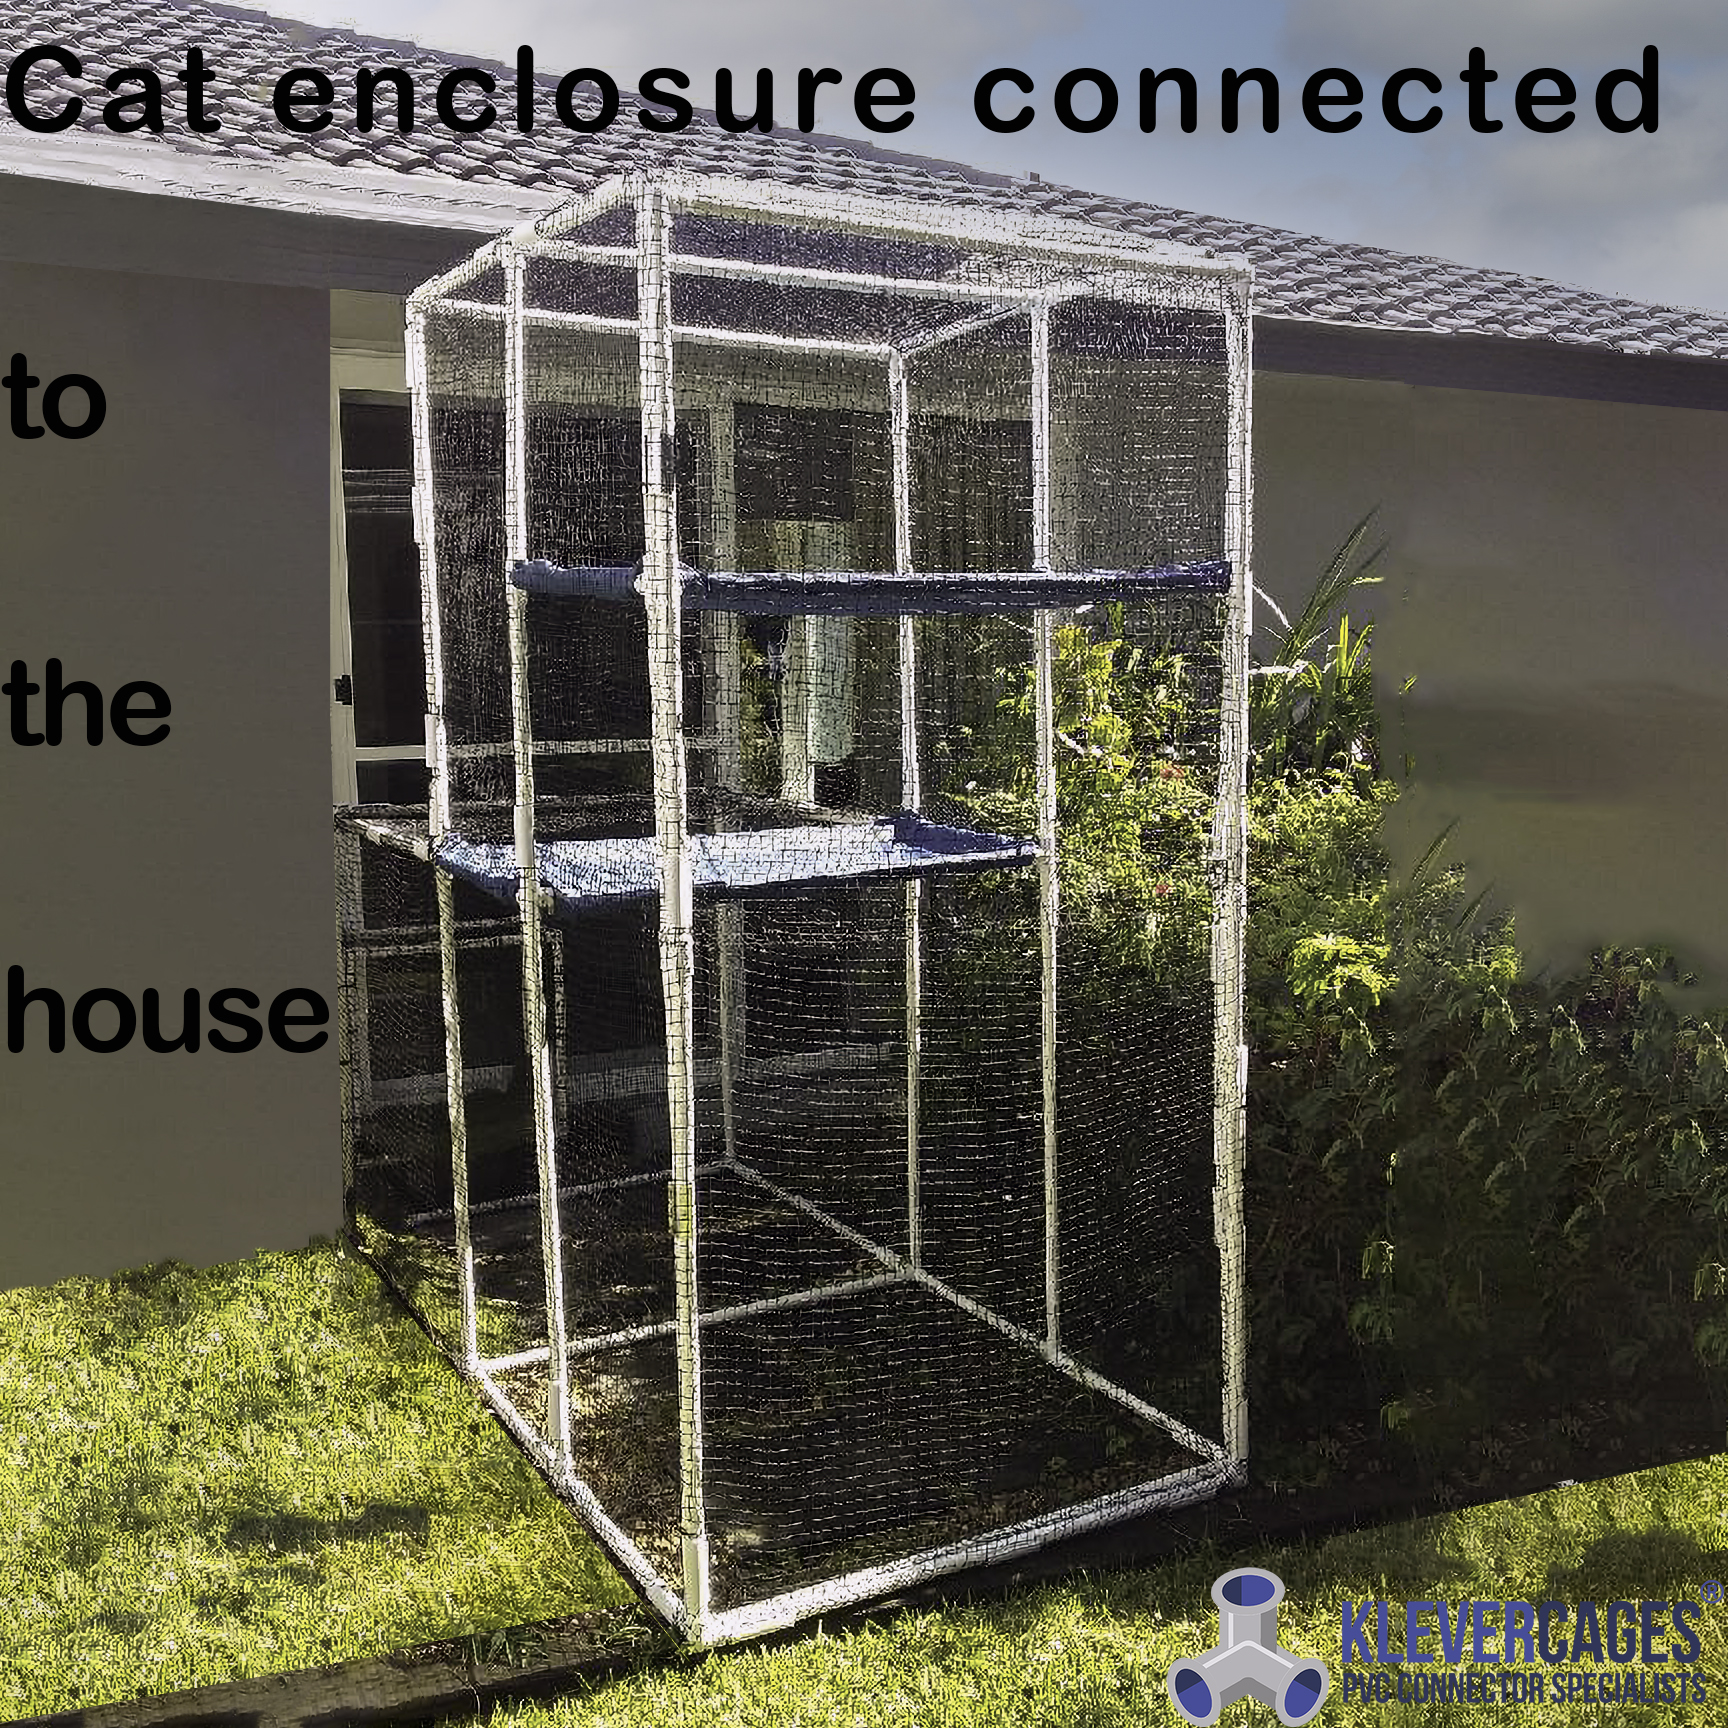 Build outdoor cat enclosures connected to hiouse like this one built with PVC pipe and connector fittings from Klever Cages